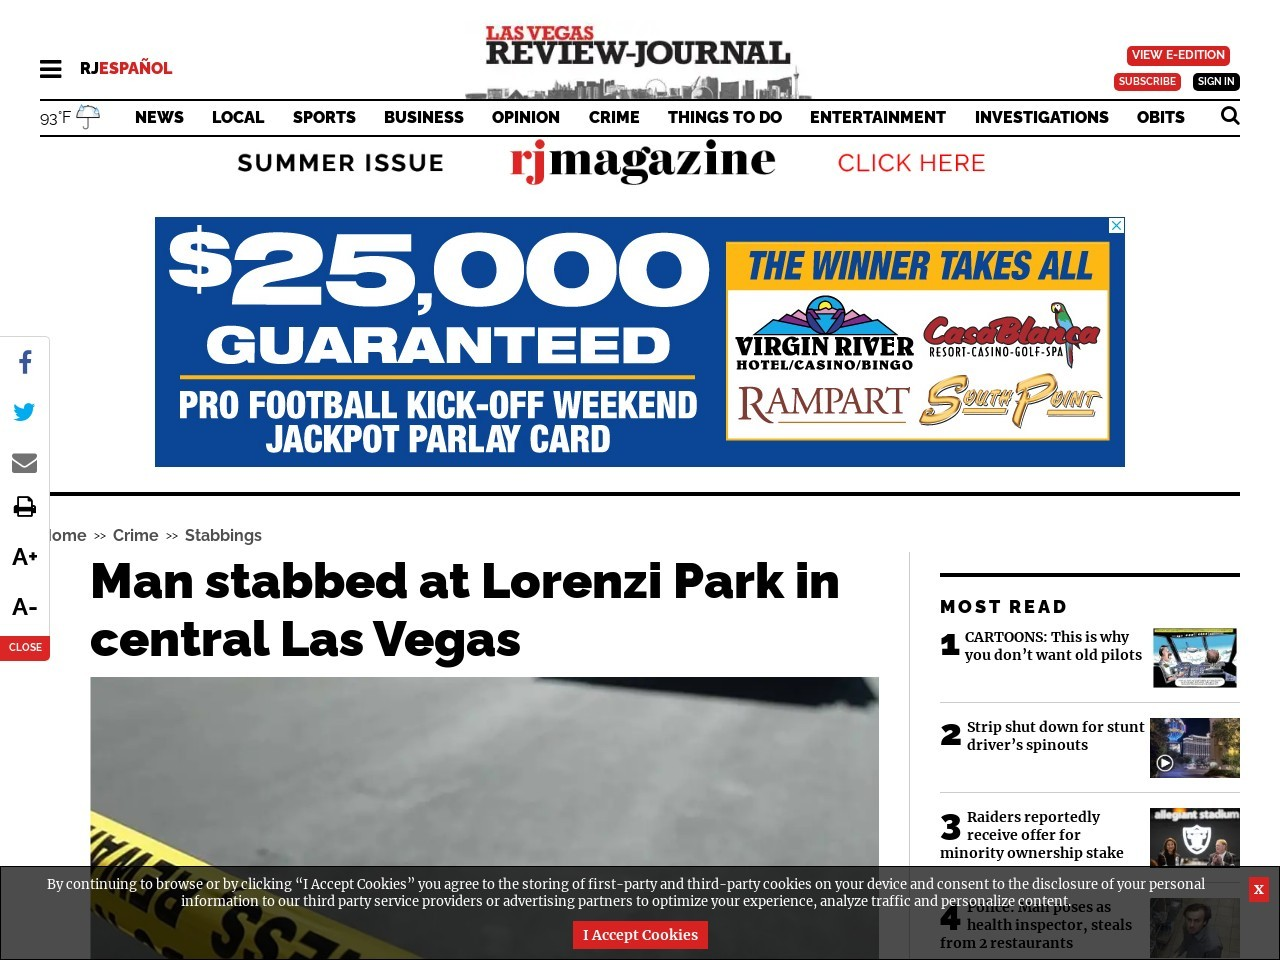 Man stabbed at Lorenzi Park in central Las Vegas